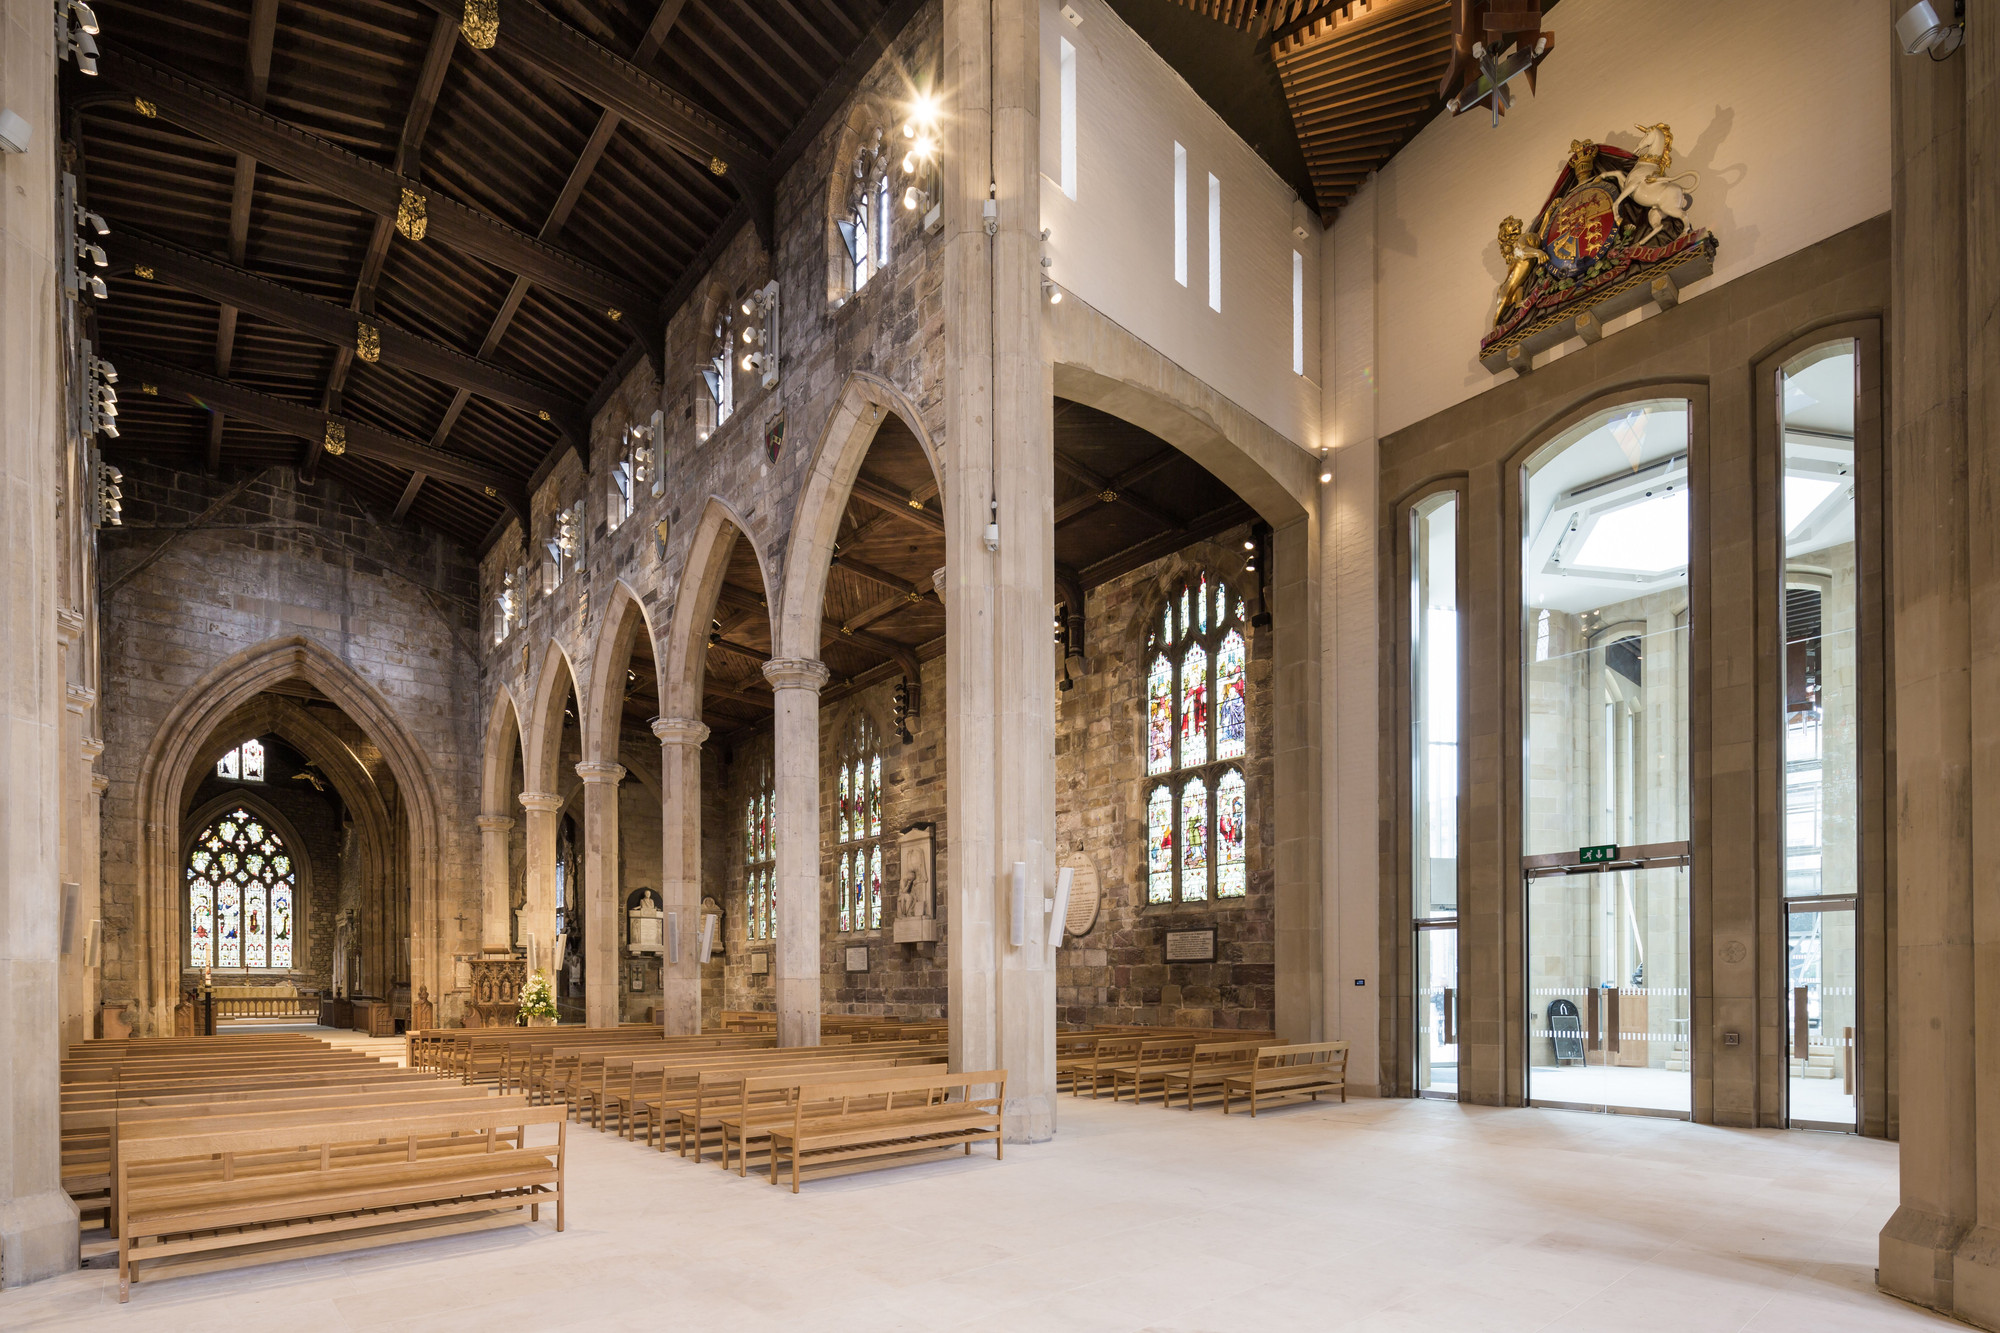 Shortlist Announced For 2015 RIBA Yorkshire Awards, Shortlisted: Sheffield Cathedral, Sheffield / Thomas Ford and Partners. Image © Exposure Property Marketing